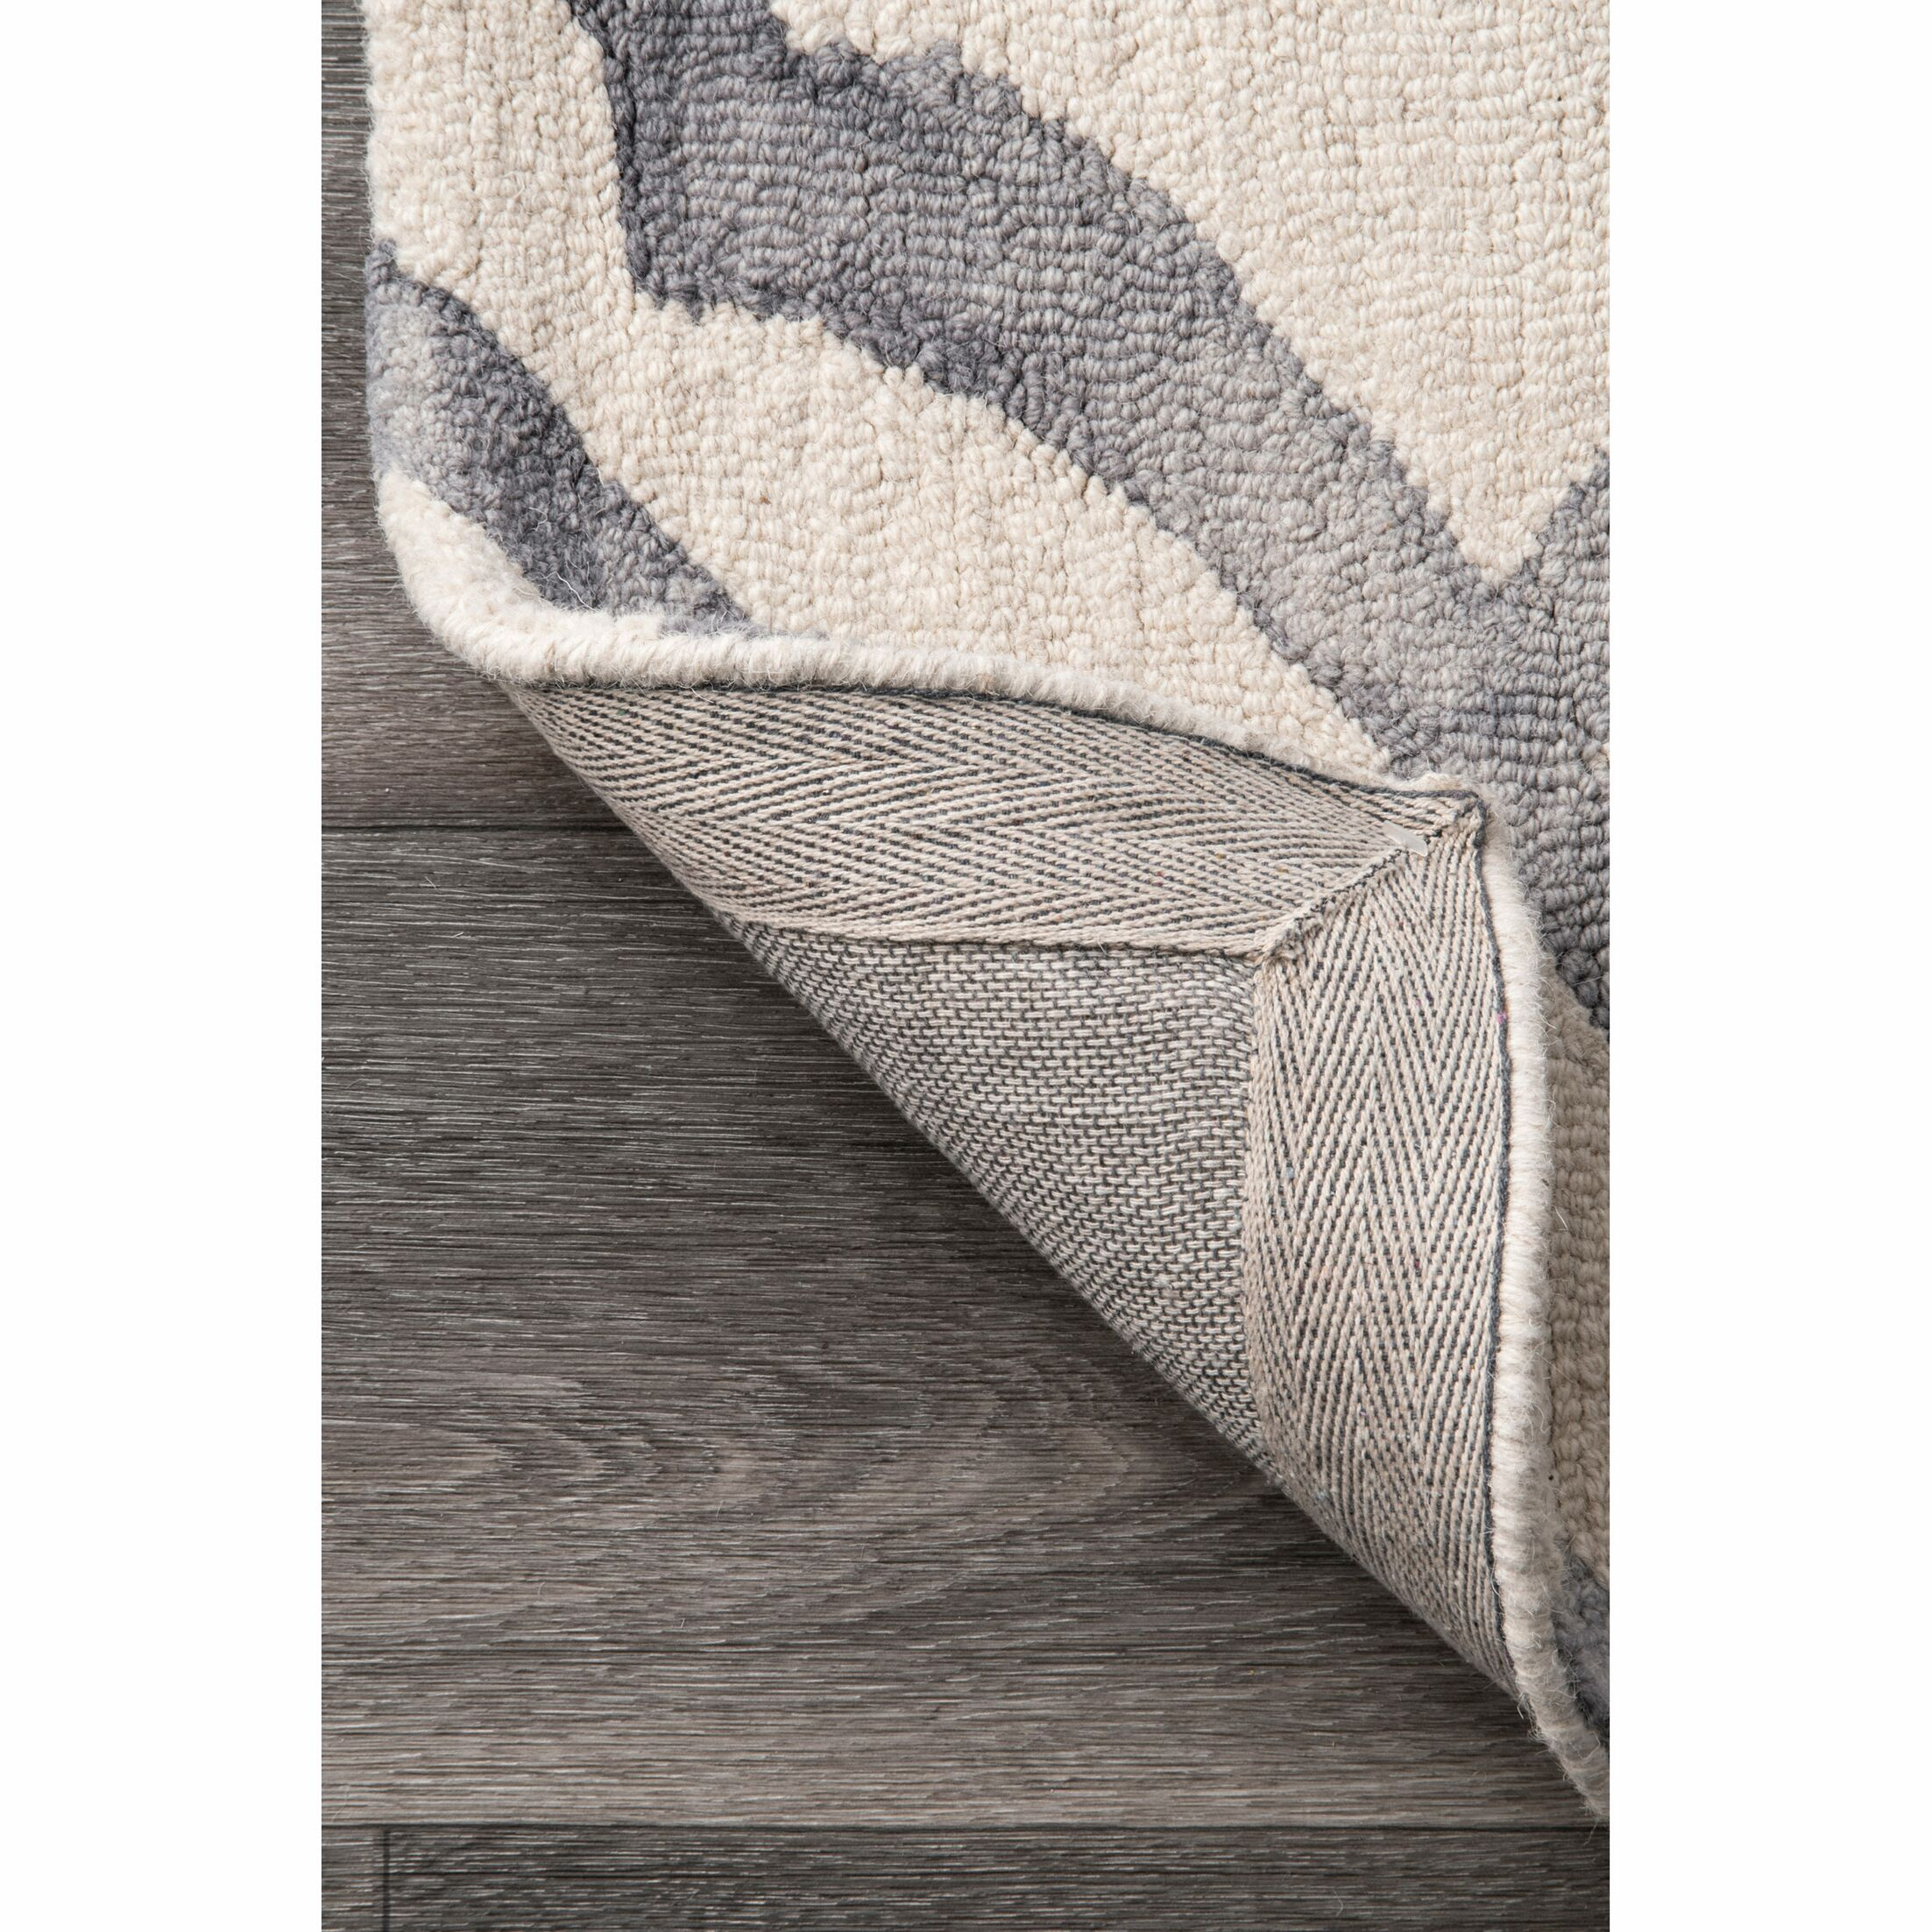 Beatrix Light Gray Area Rug Rug Size: Rectangle 9' 6